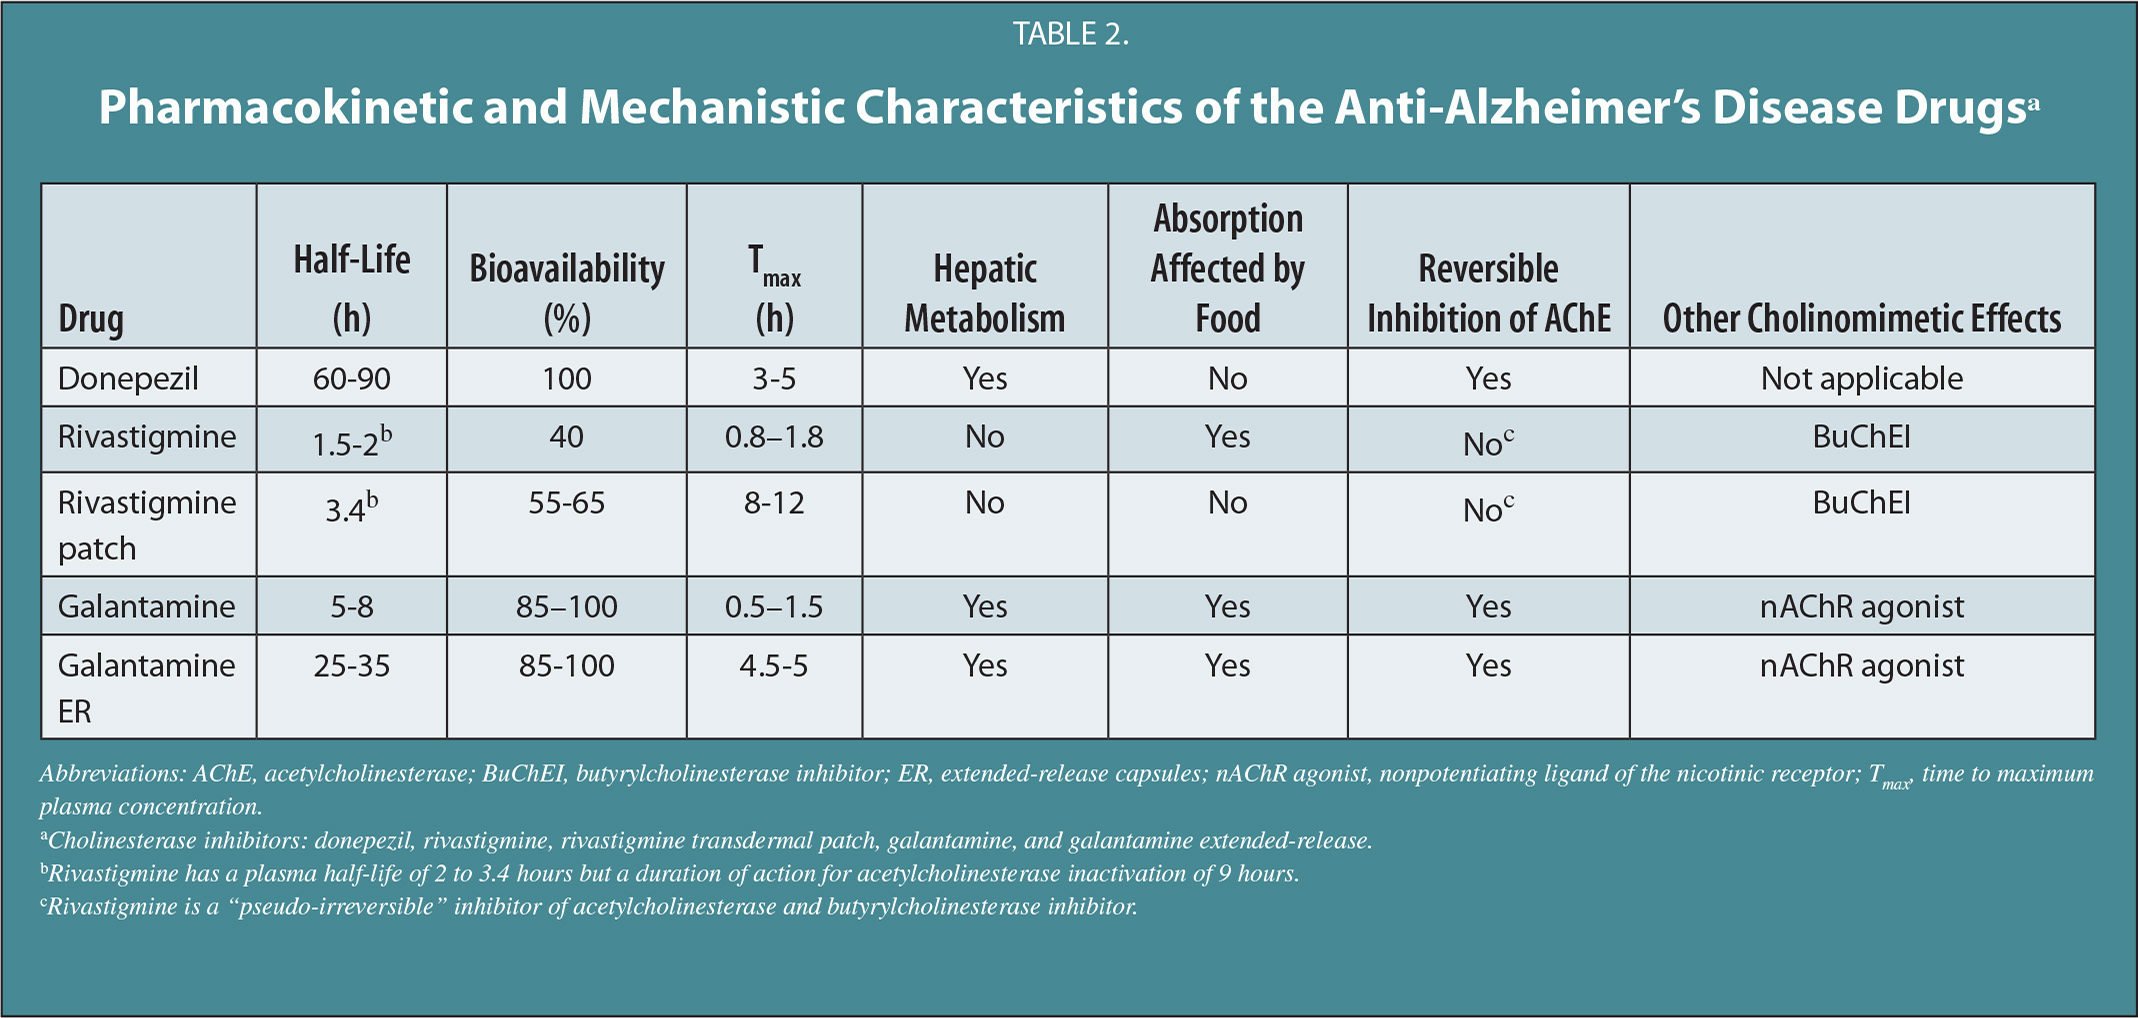 Pharmacokinetic and Mechanistic Characteristics of the Anti-Alzheimer's Disease Drugsa